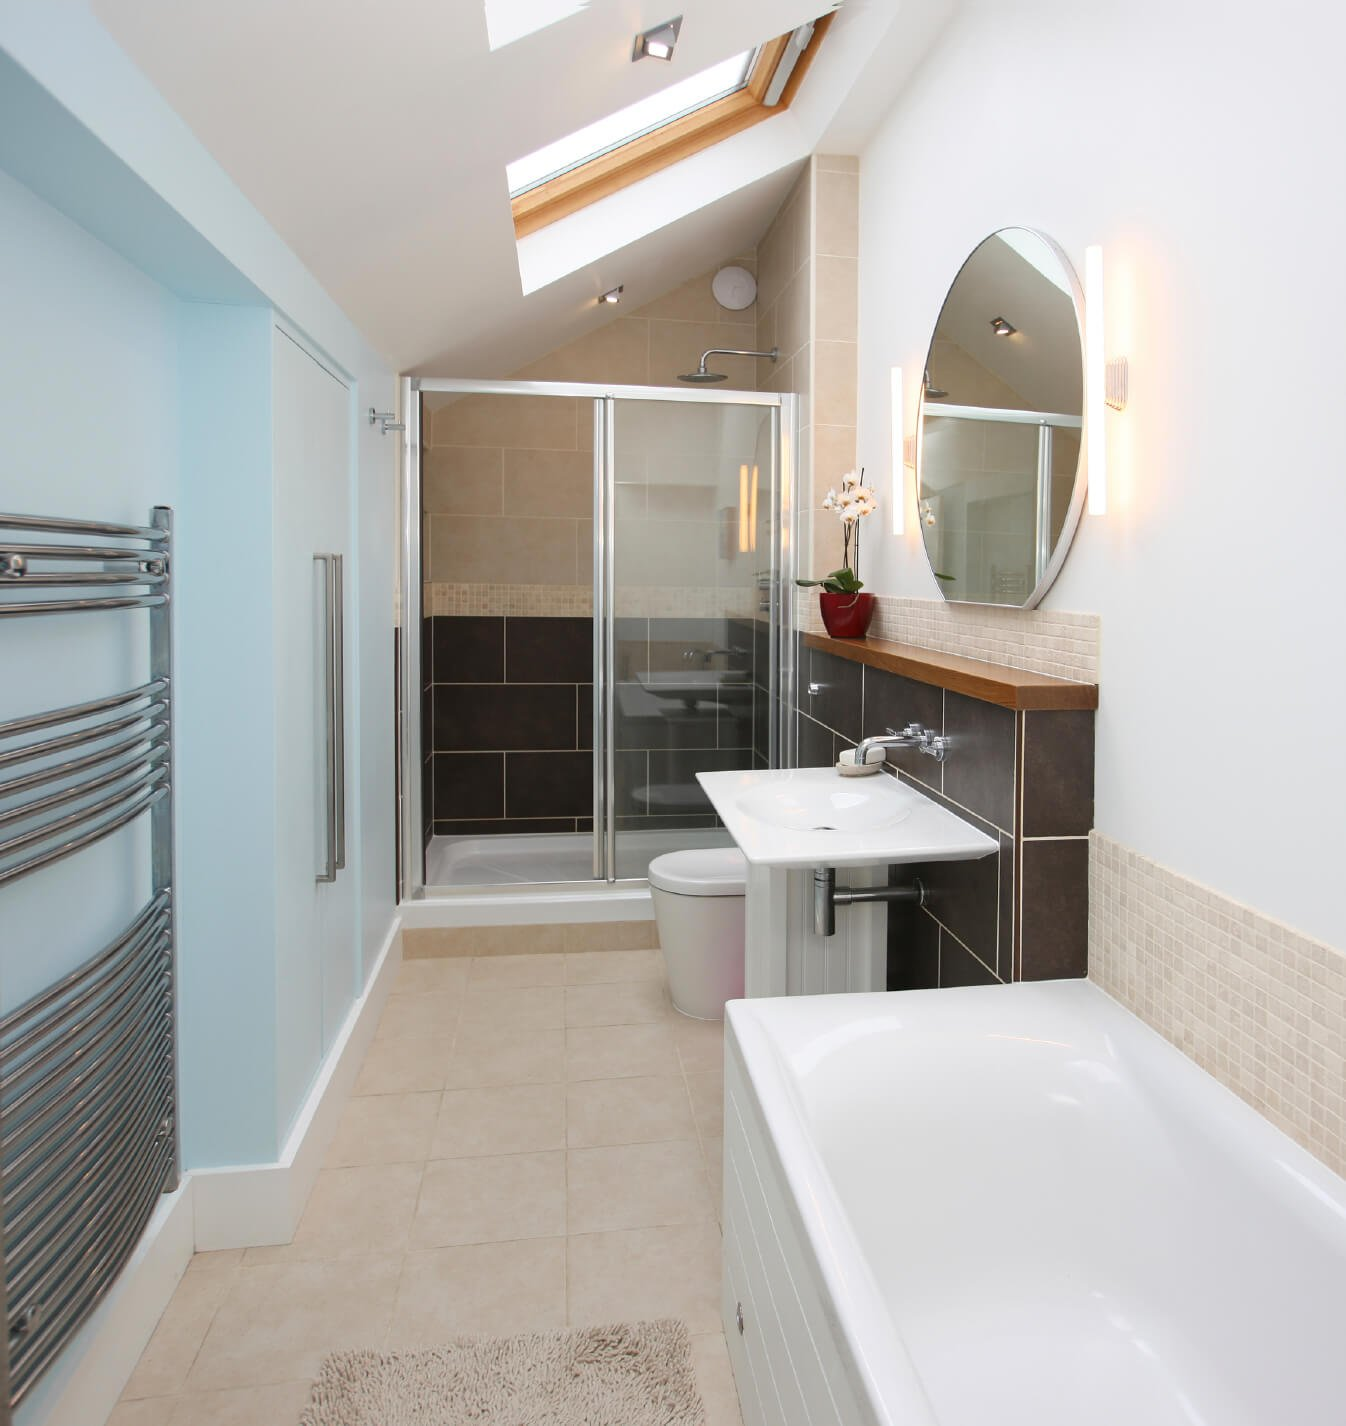 The above skylight hovers high above this simple bathroom, allowing sunlight to drench the space.